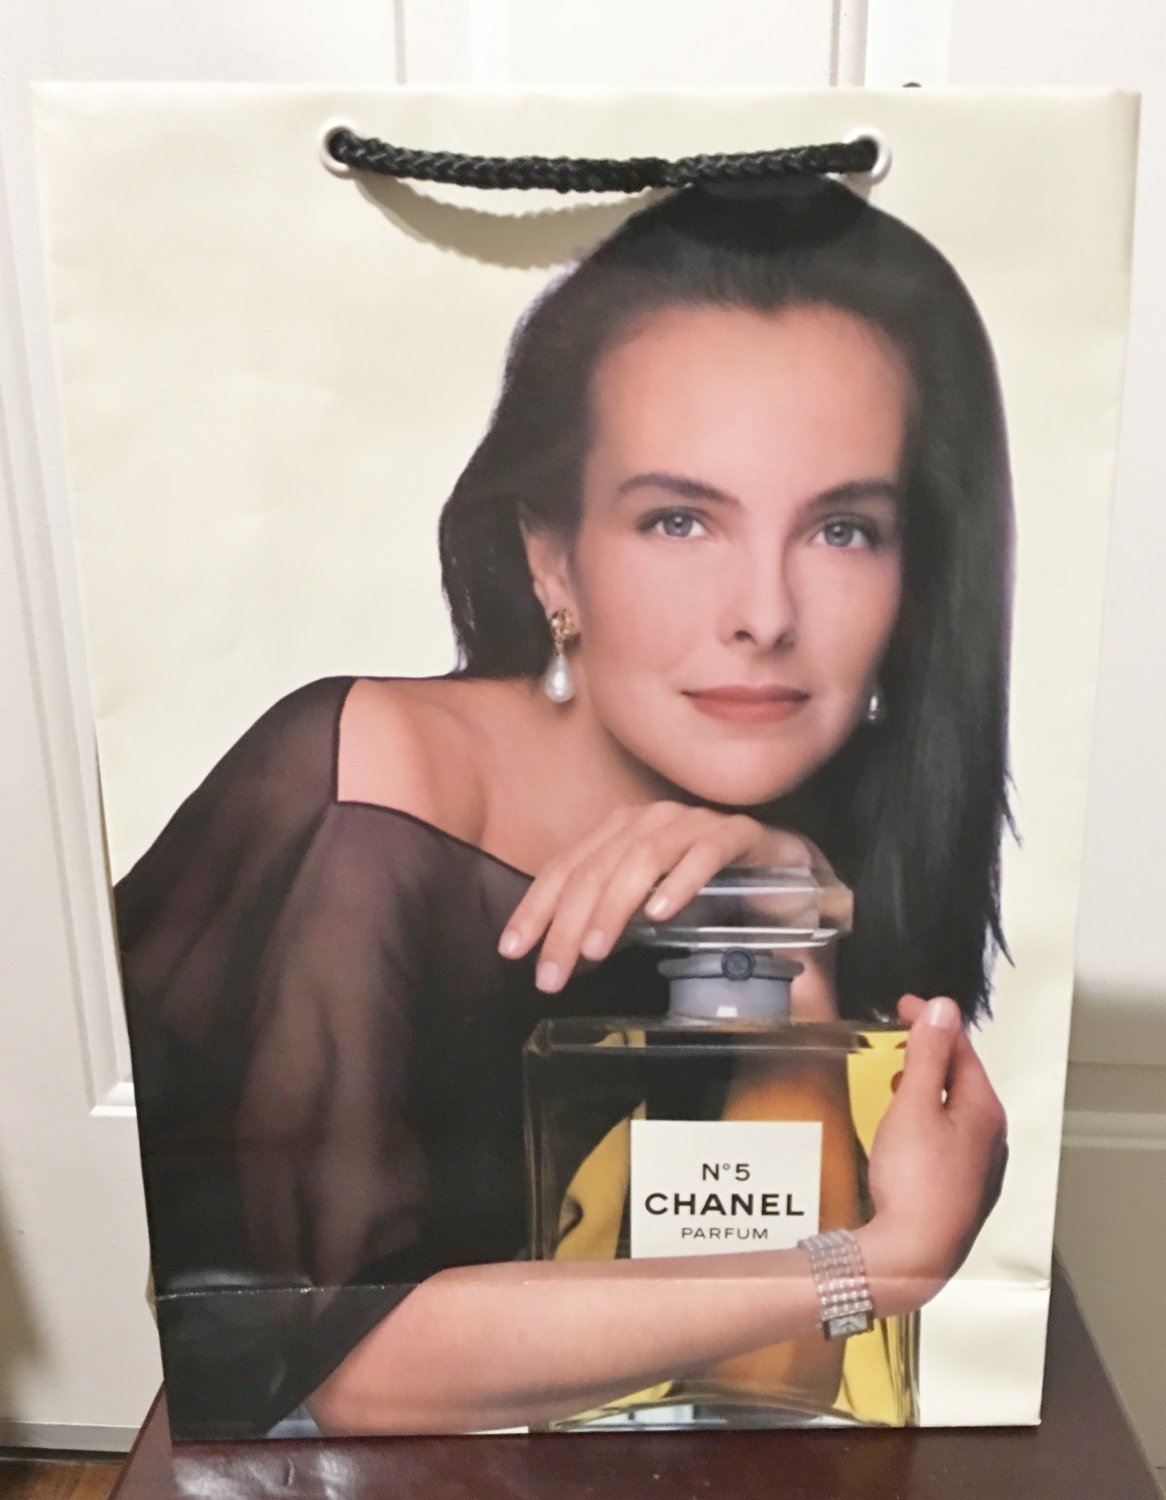 Vintage CHANEL GIFT BAG  QTY 6 Glossy Paper Shopping Bags No5 Fragrance Collectible